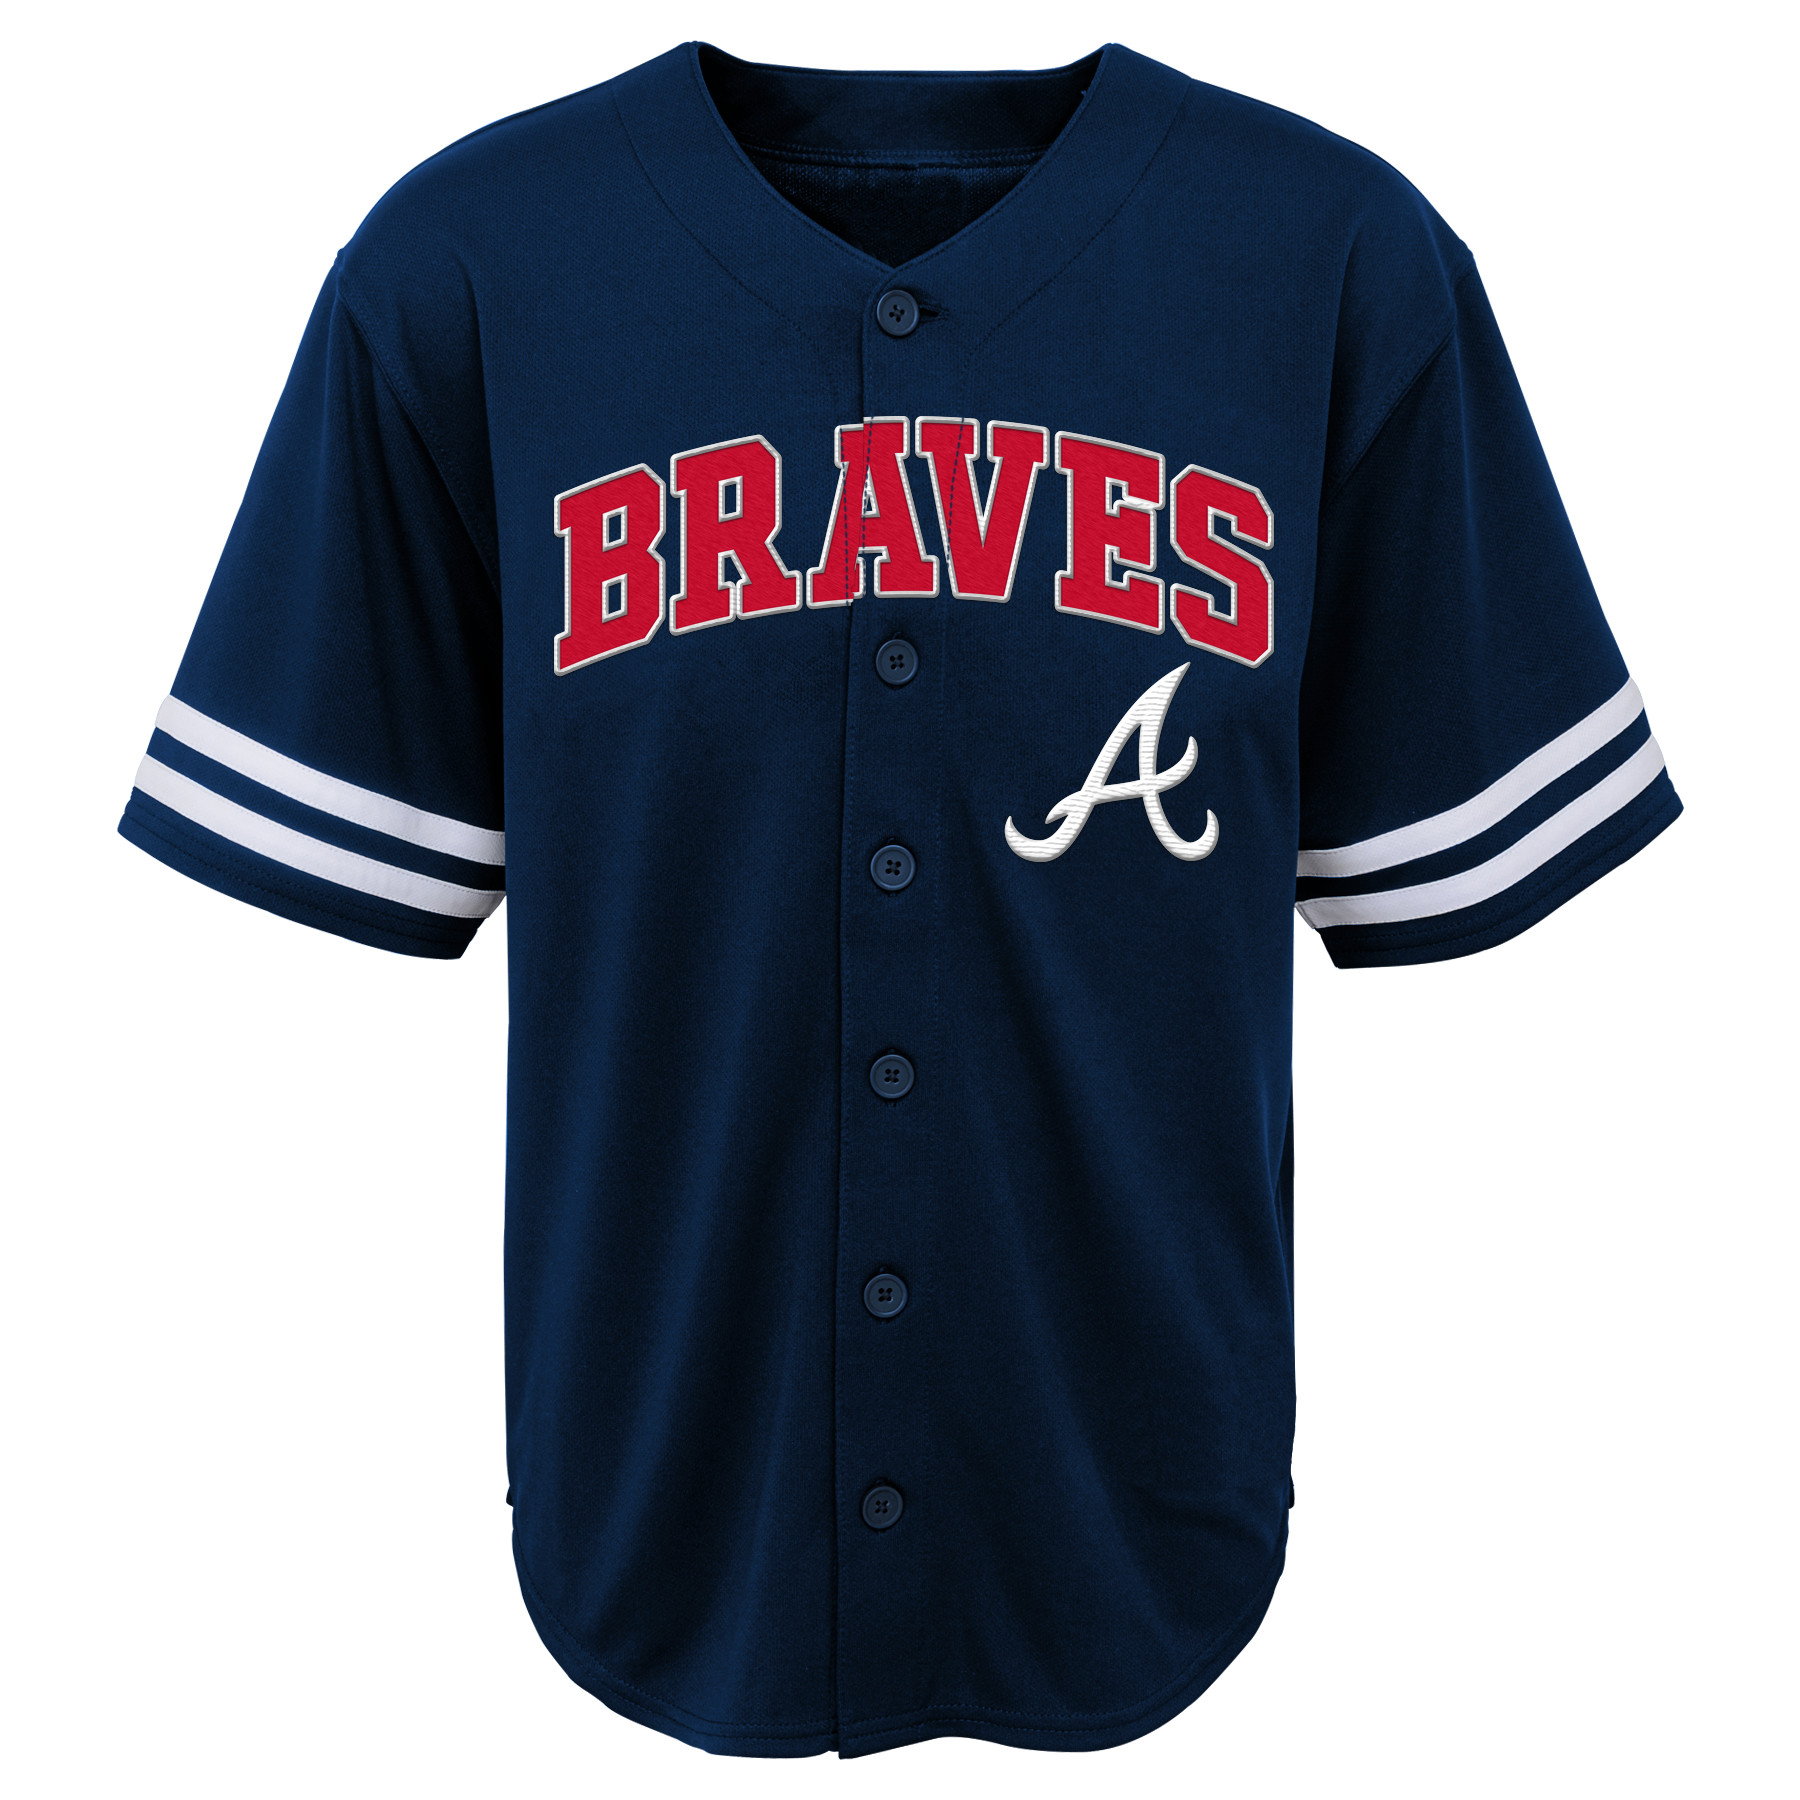 MLB Atlanta Braves TEE Short Sleeve Boys Fashion Jersey Tee 60% Cotton 40% Polyester BLACK Team Tee 4-18